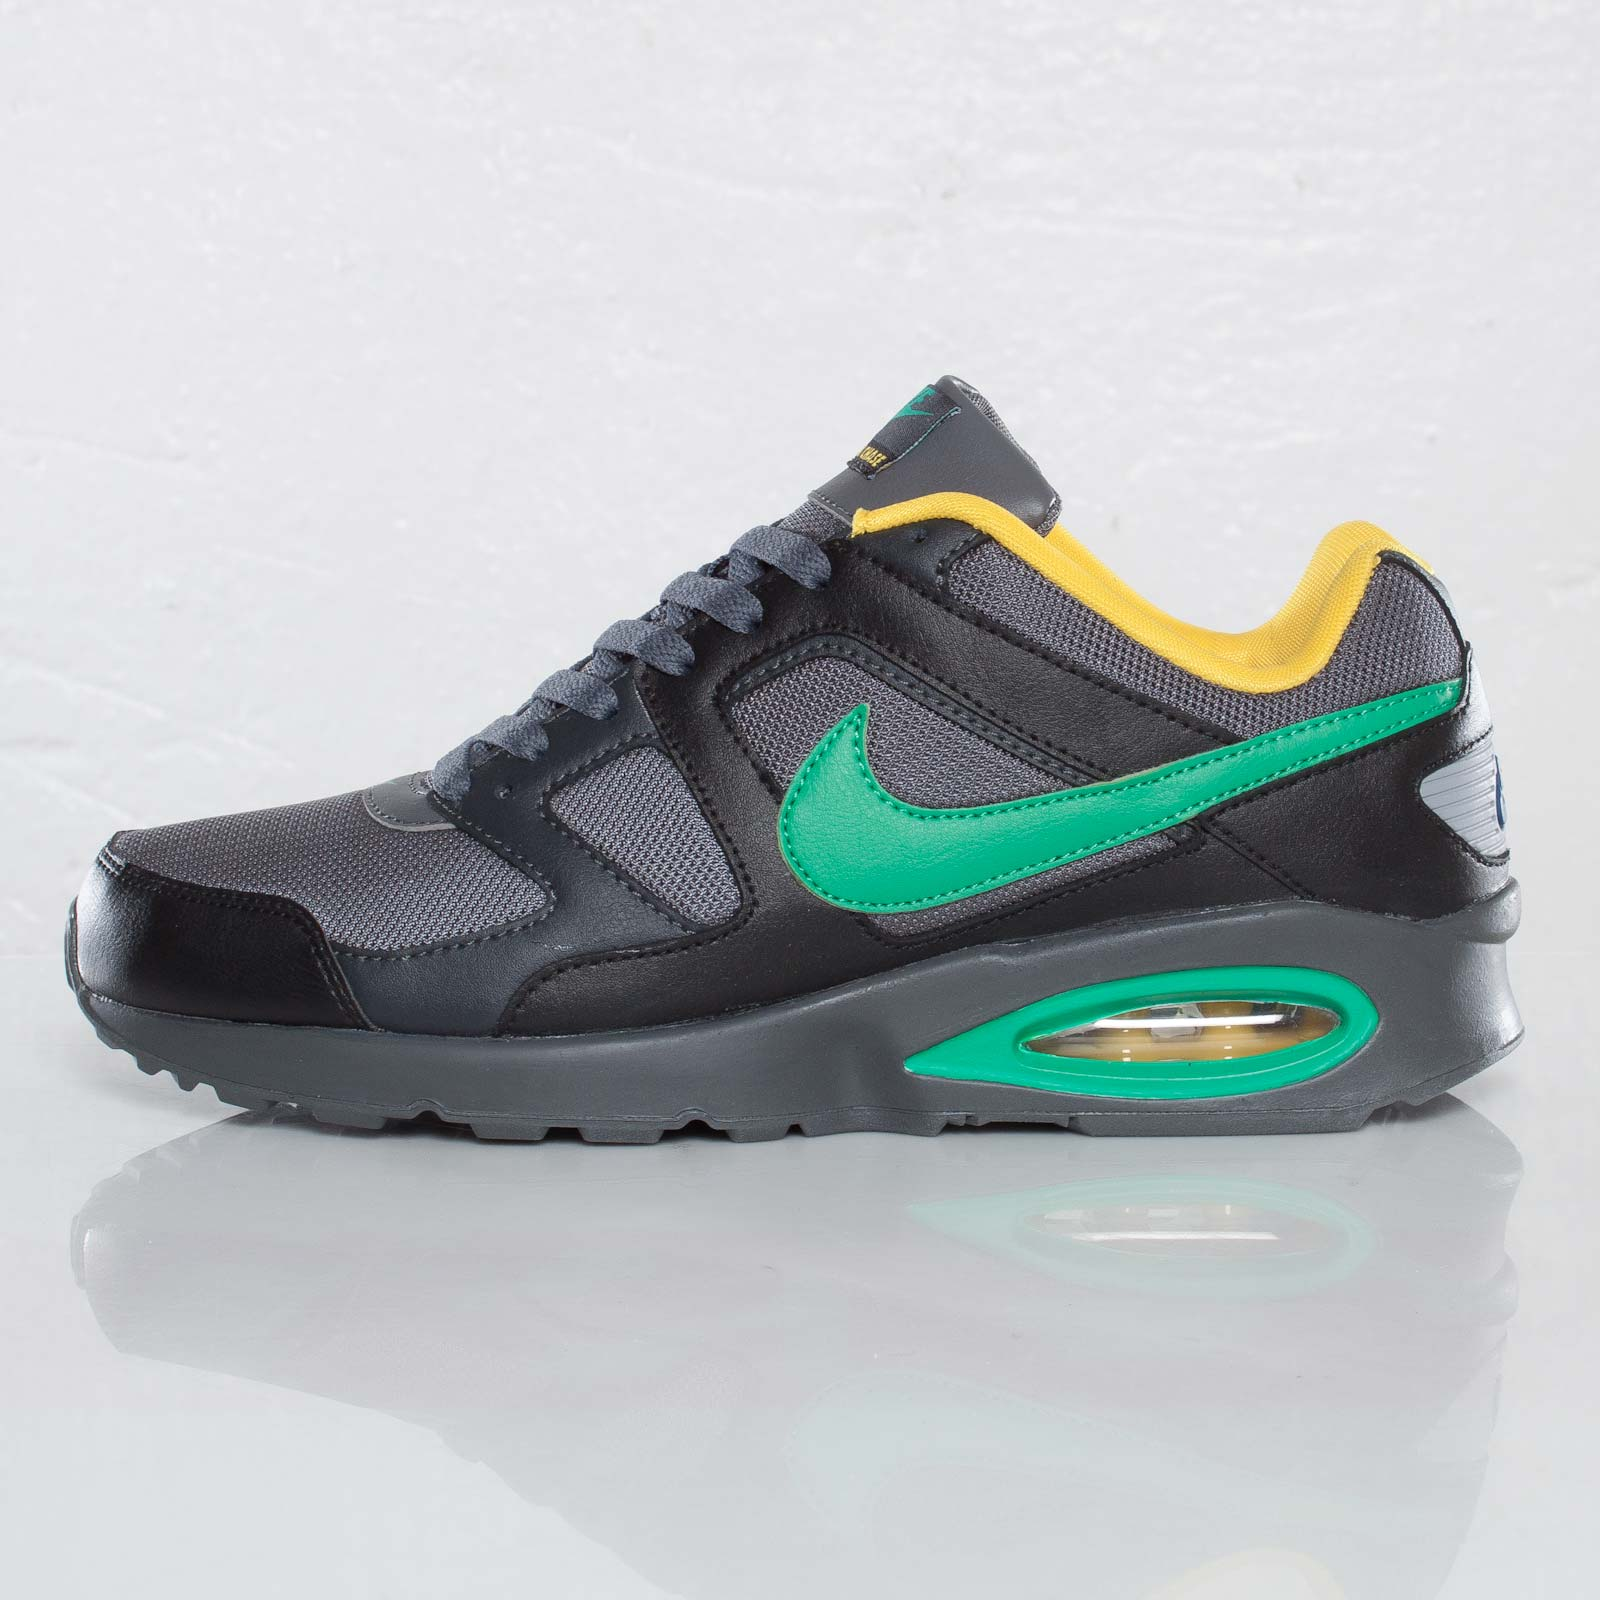 factory price 53313 2aff4 Air Sneakersnstuff Nike Chase sneakers 111022 et Max ZTKwq8cO